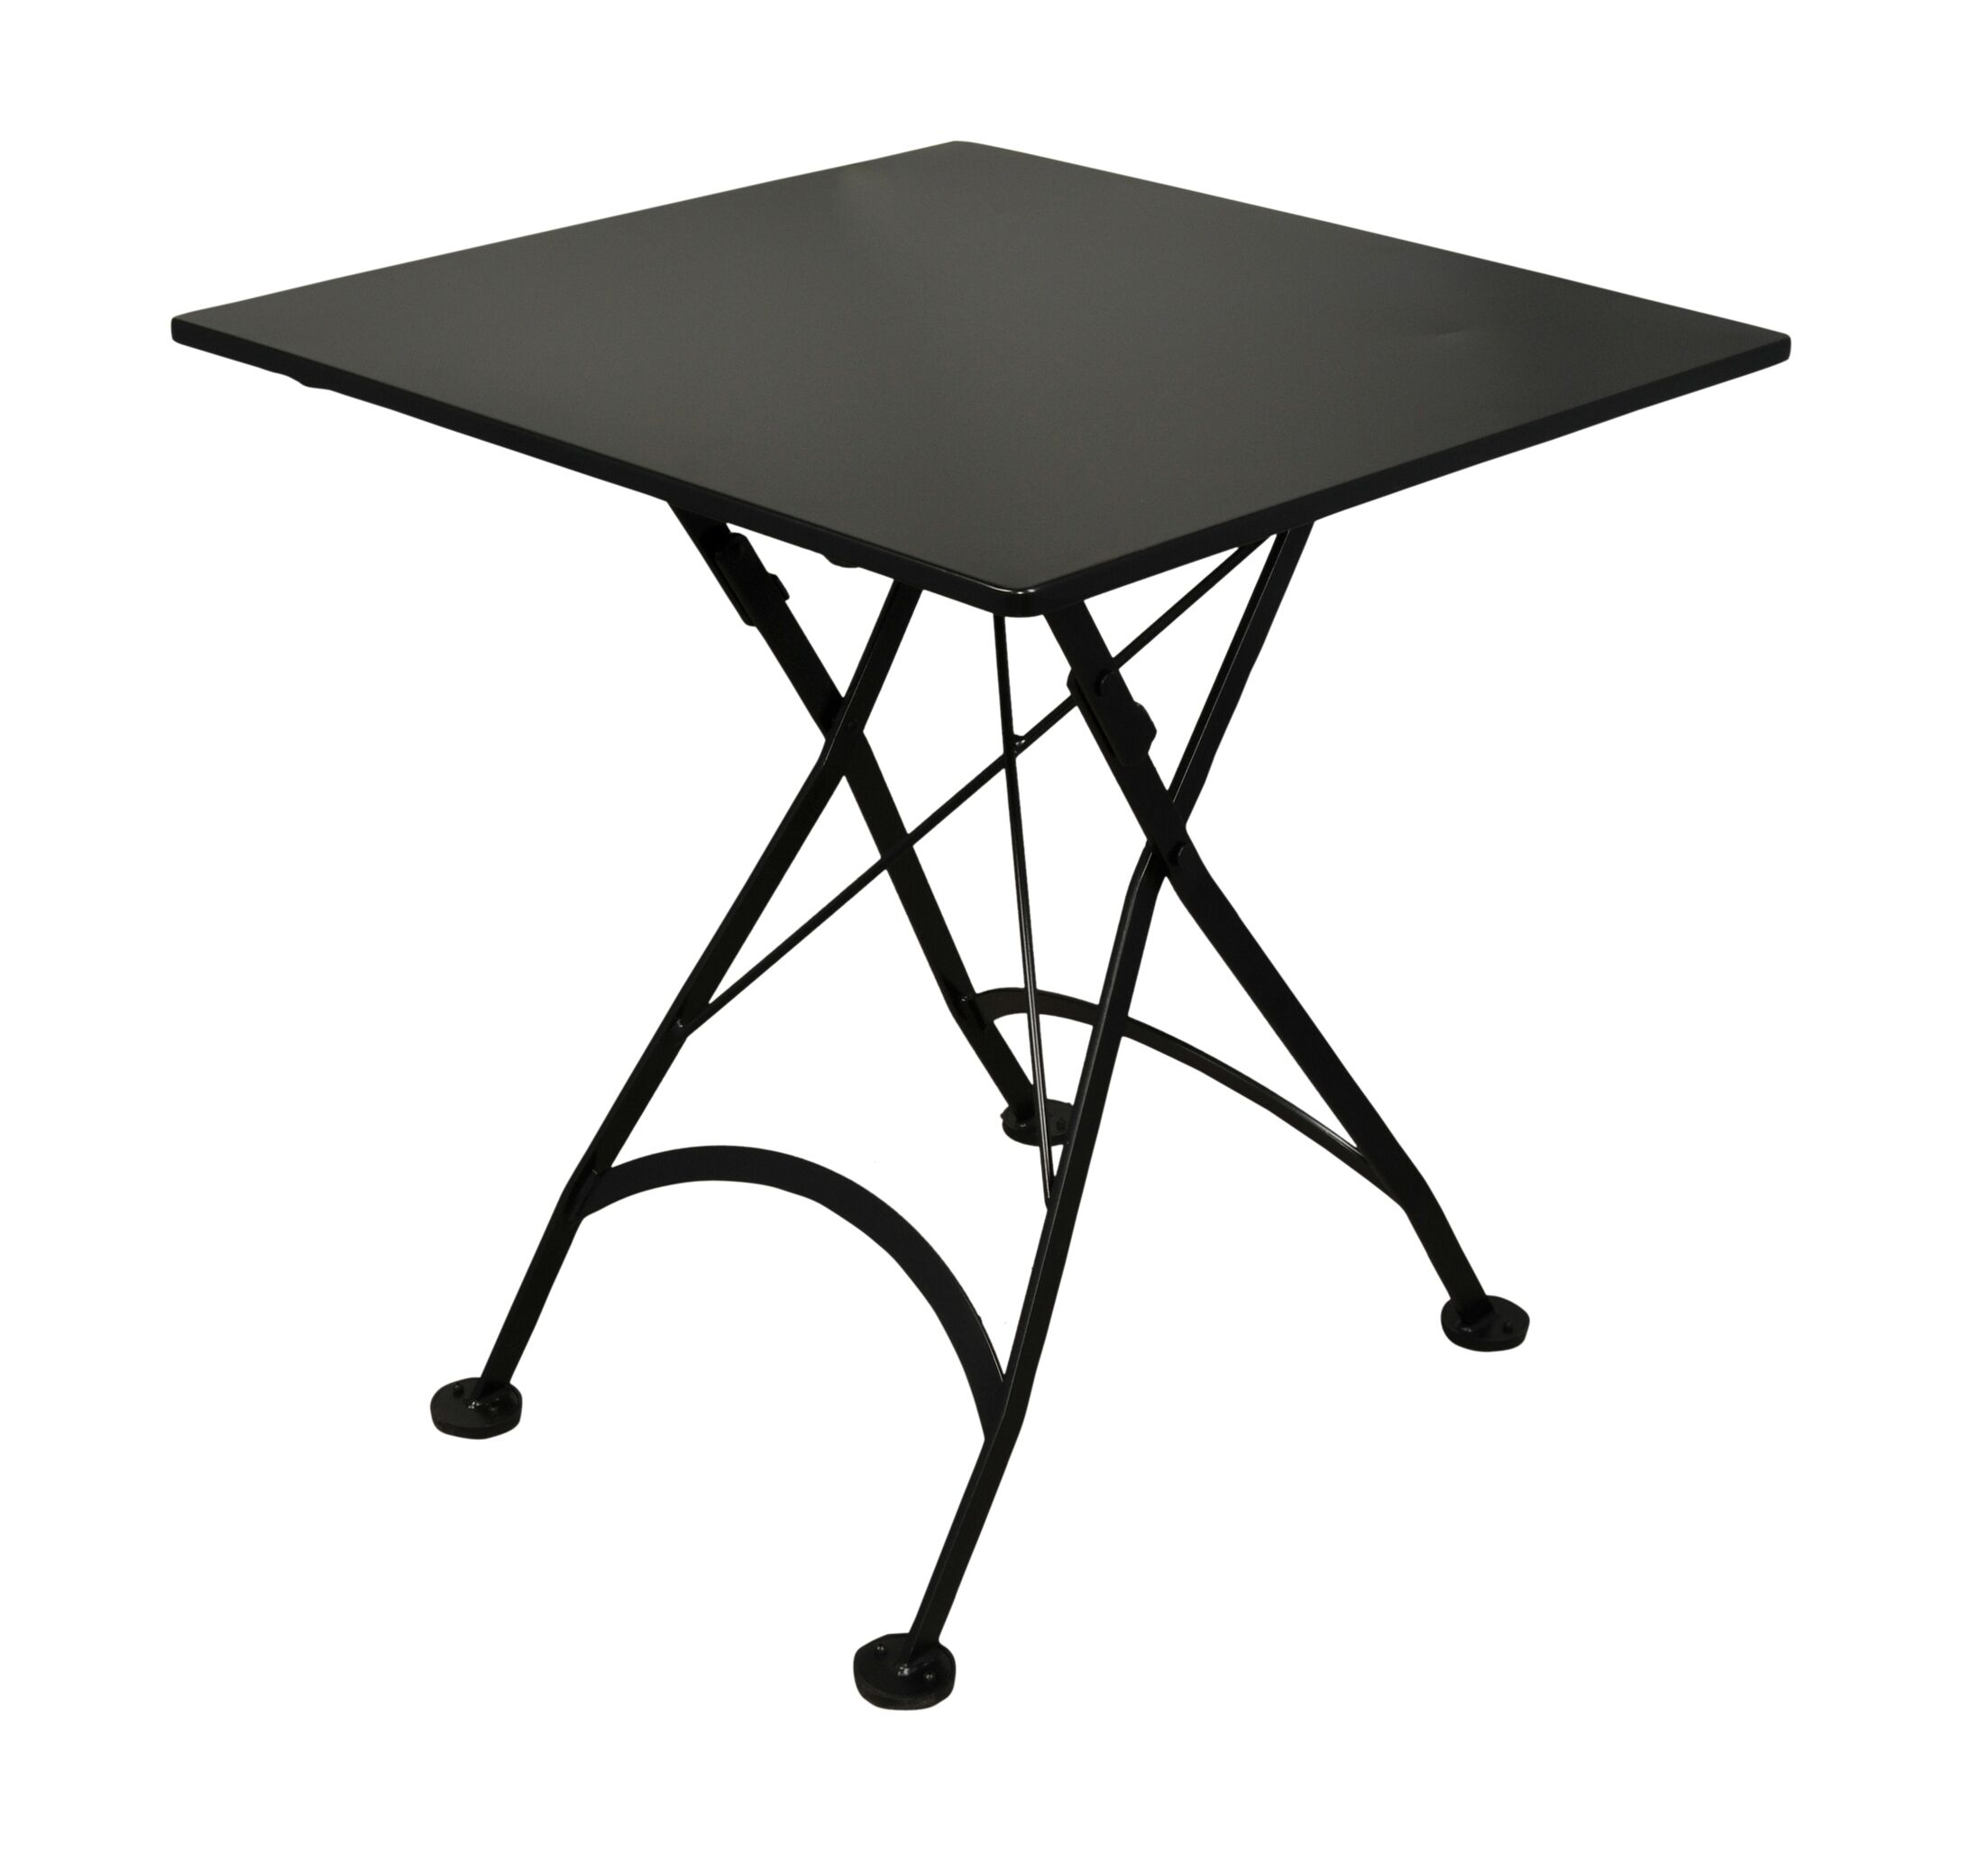 European Caf� Folding Bistro Table Table Size: 28